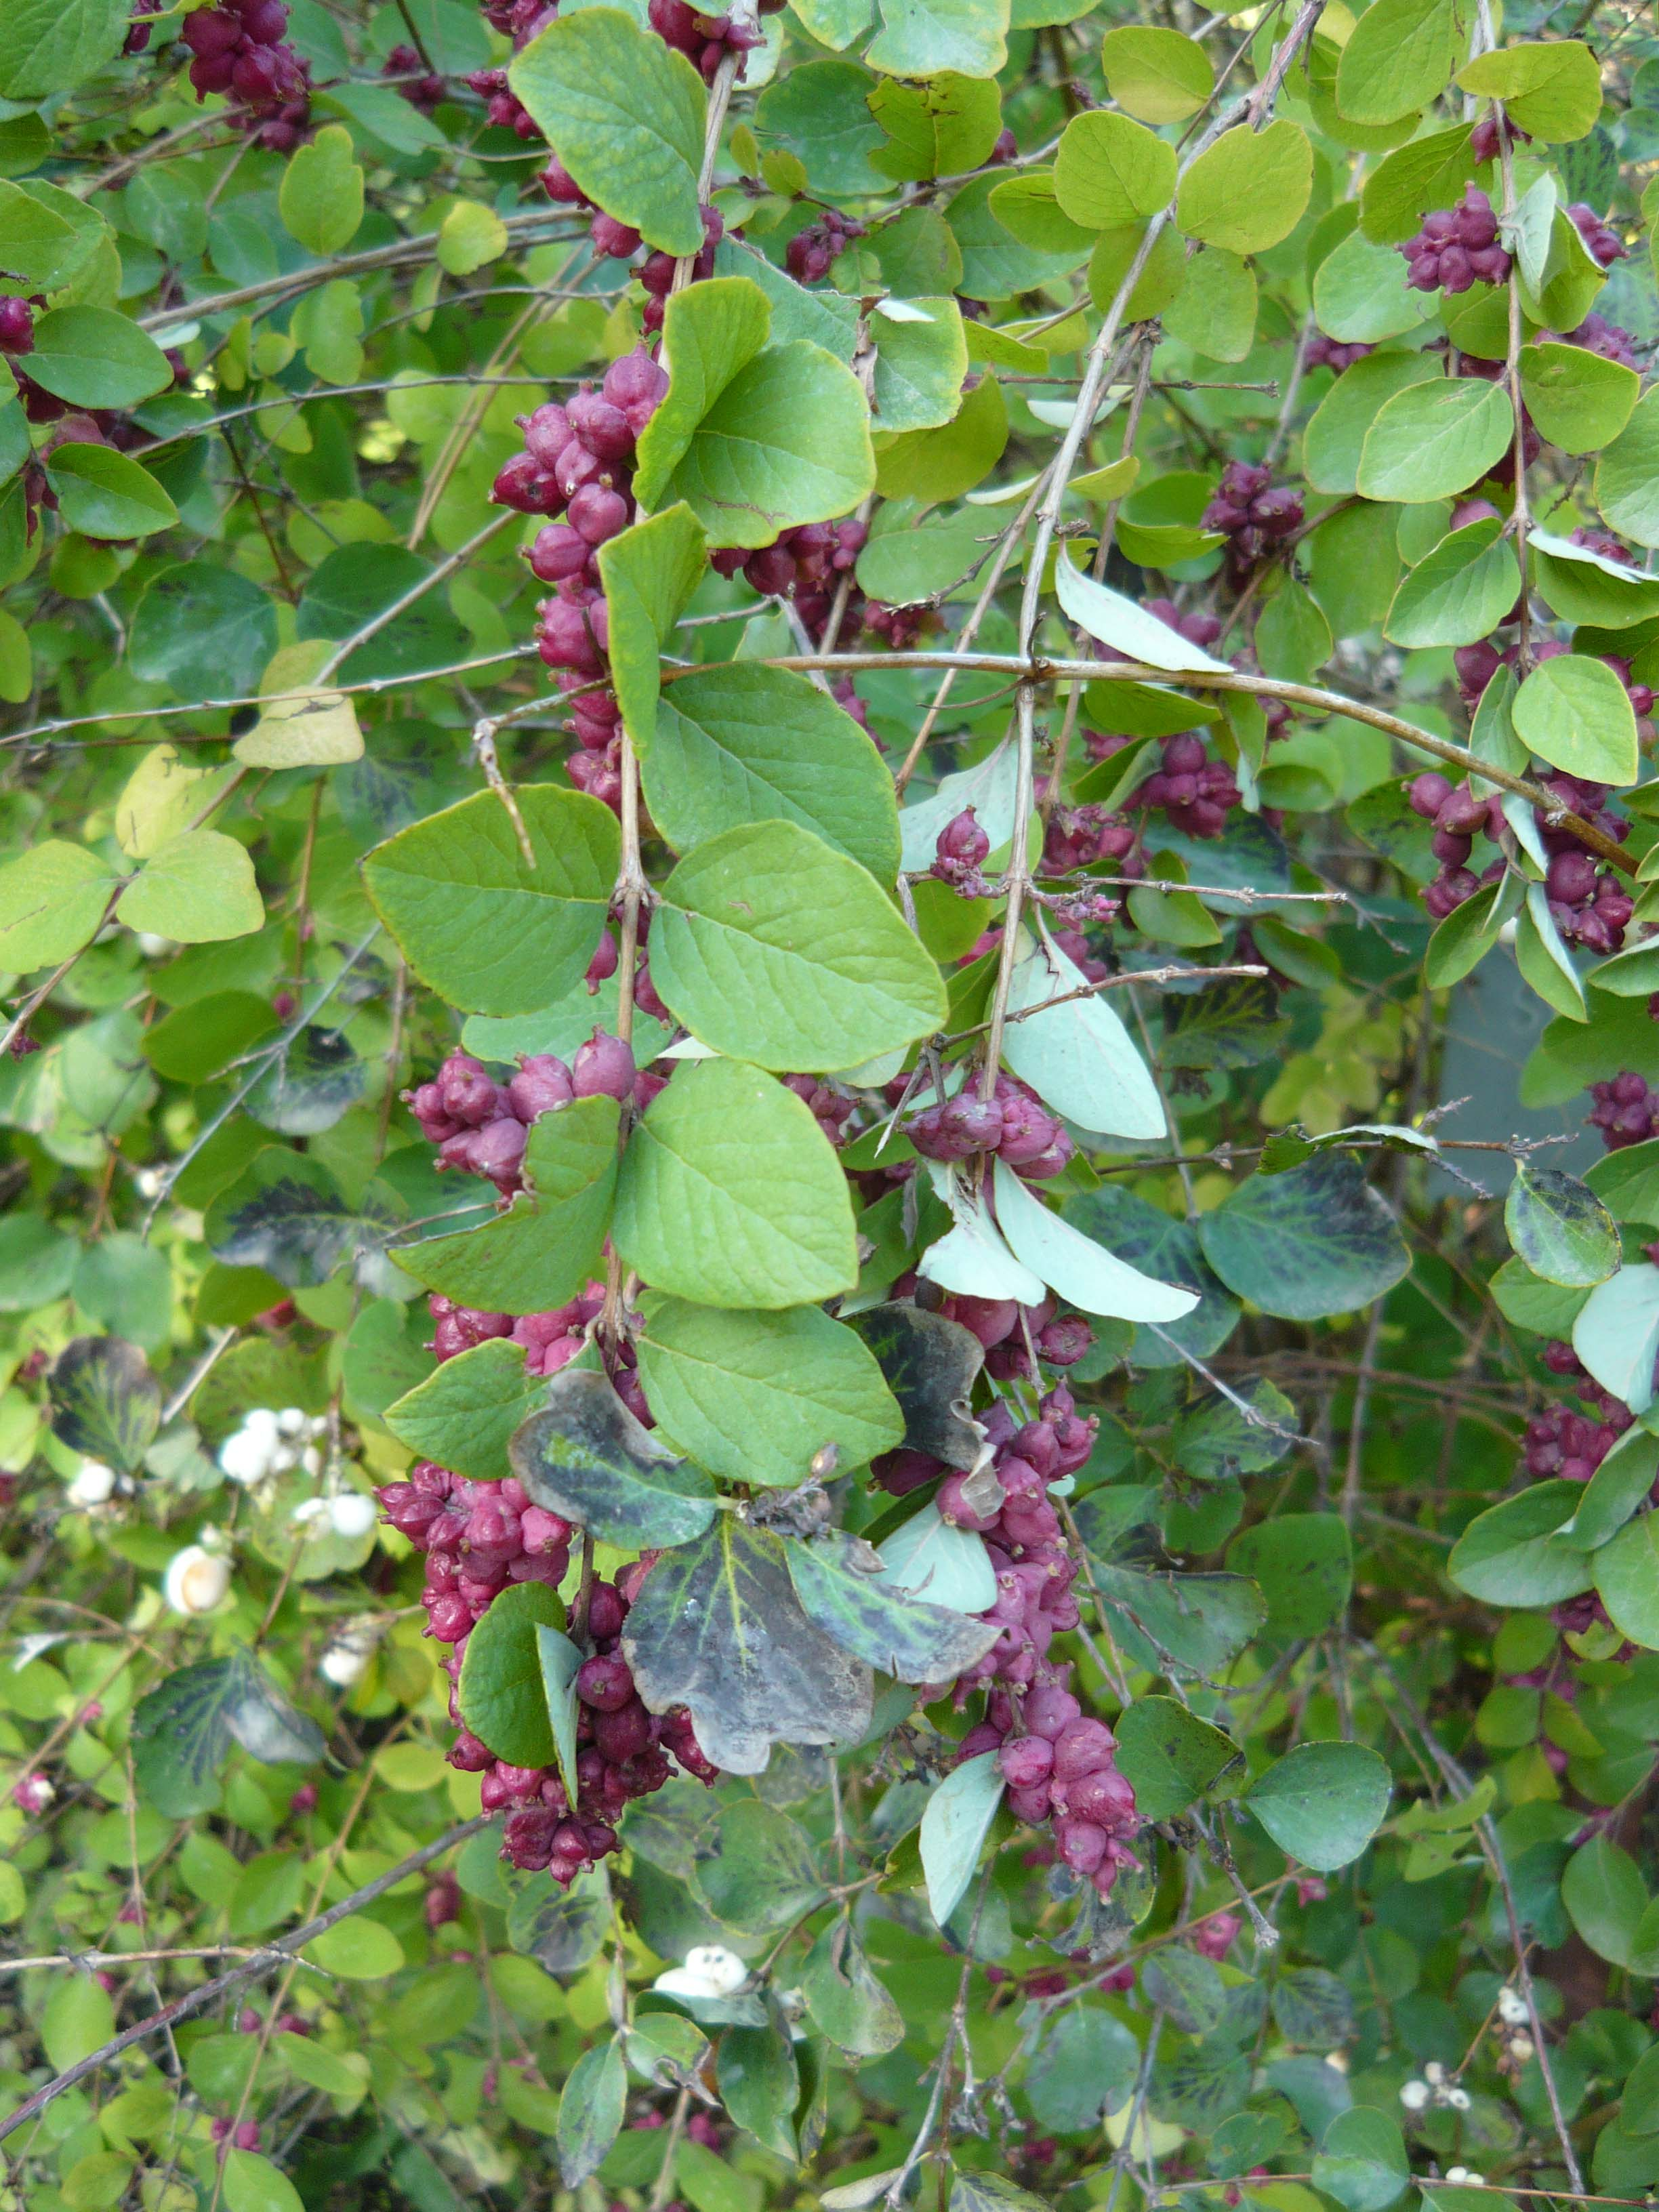 Symphoricarpos orbiculatus (coralberry, Indian current) with scale reference